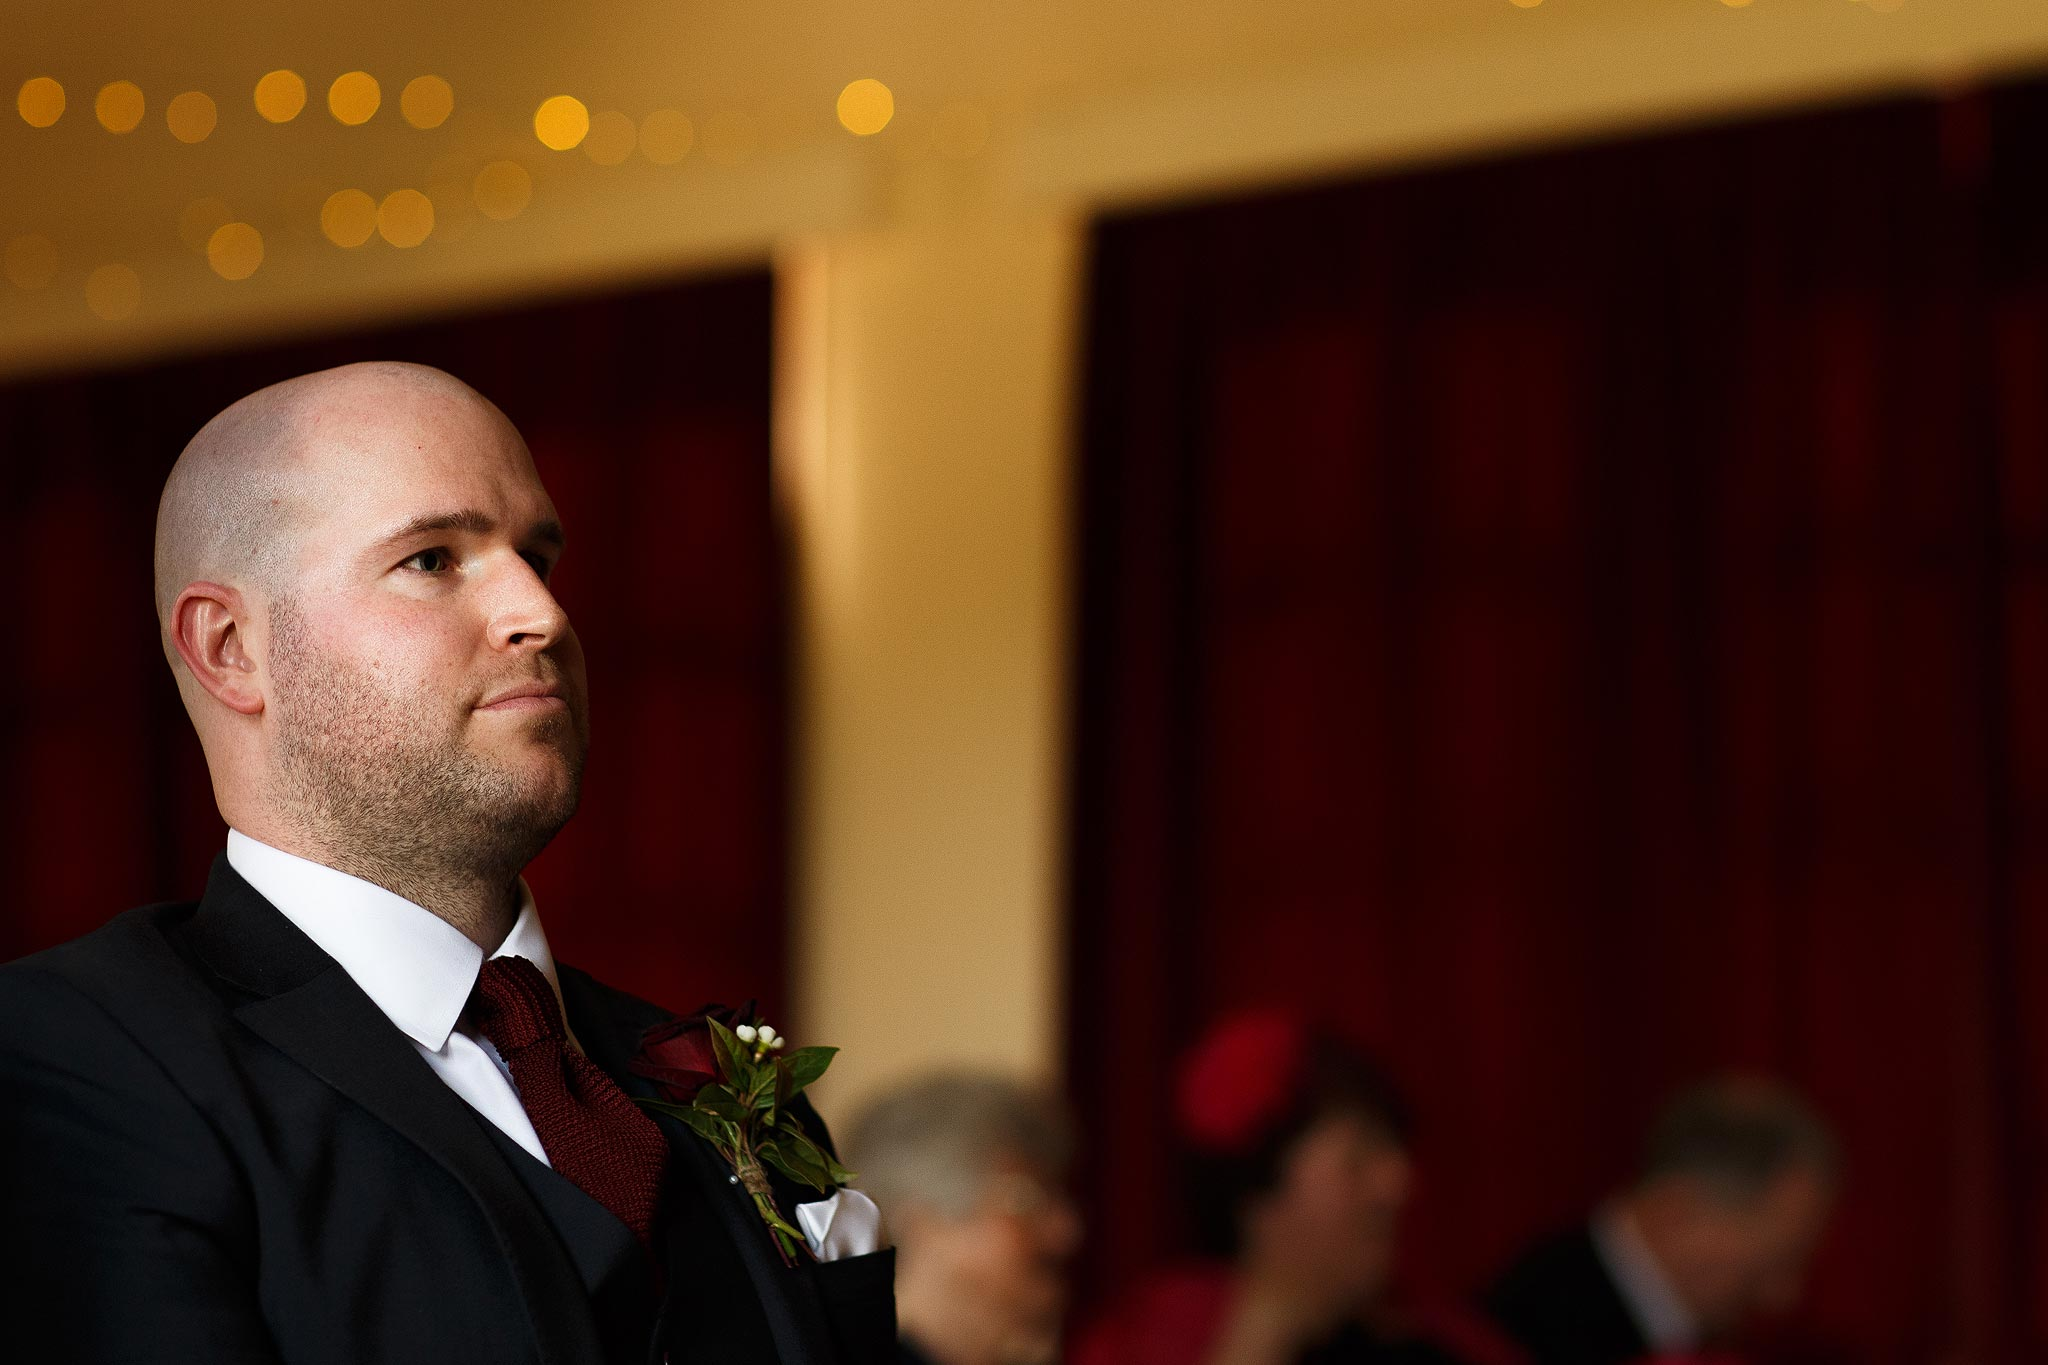 Groom waiting nervously at the top of the aisle at village hall wedding